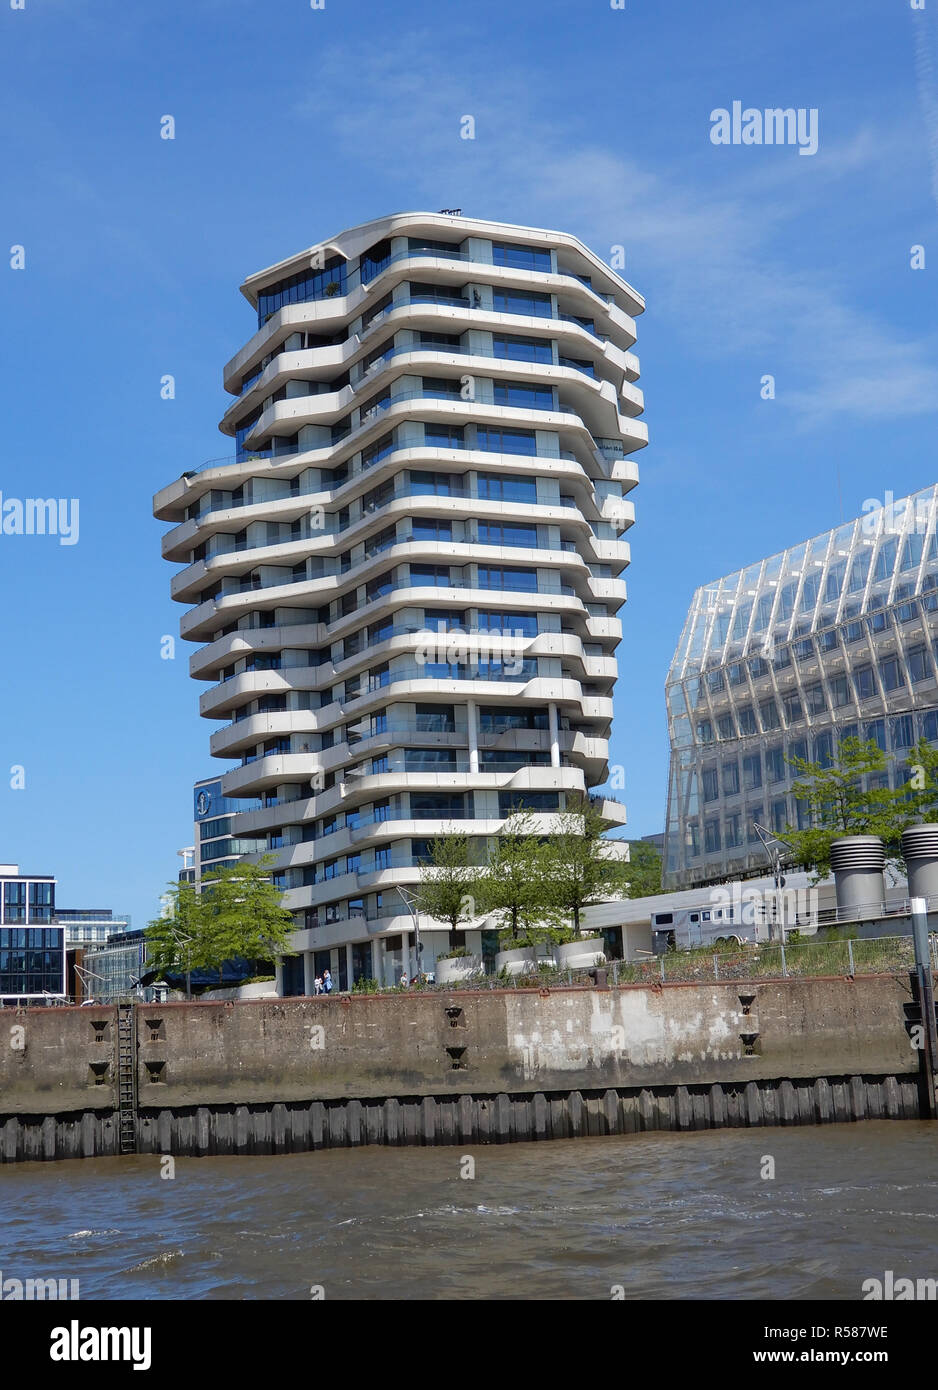 Marco Polo Tower Hafencity Hamburg Stockfoto, Bild: 226989882 - Alamy